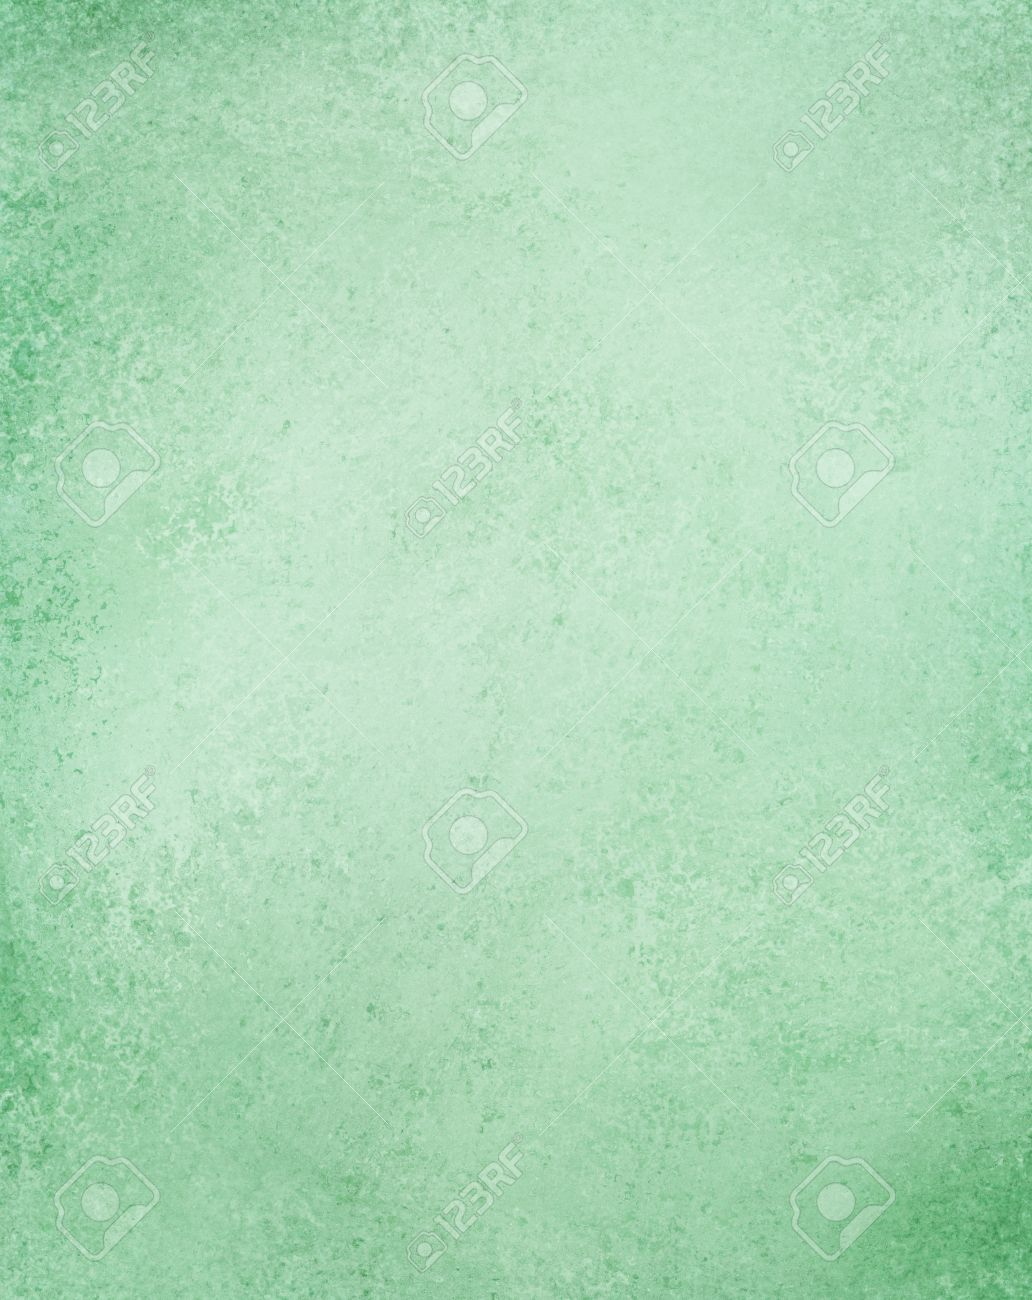 Soft Green Color Green Background Paper Vintage Texture And Distressed Soft Pale